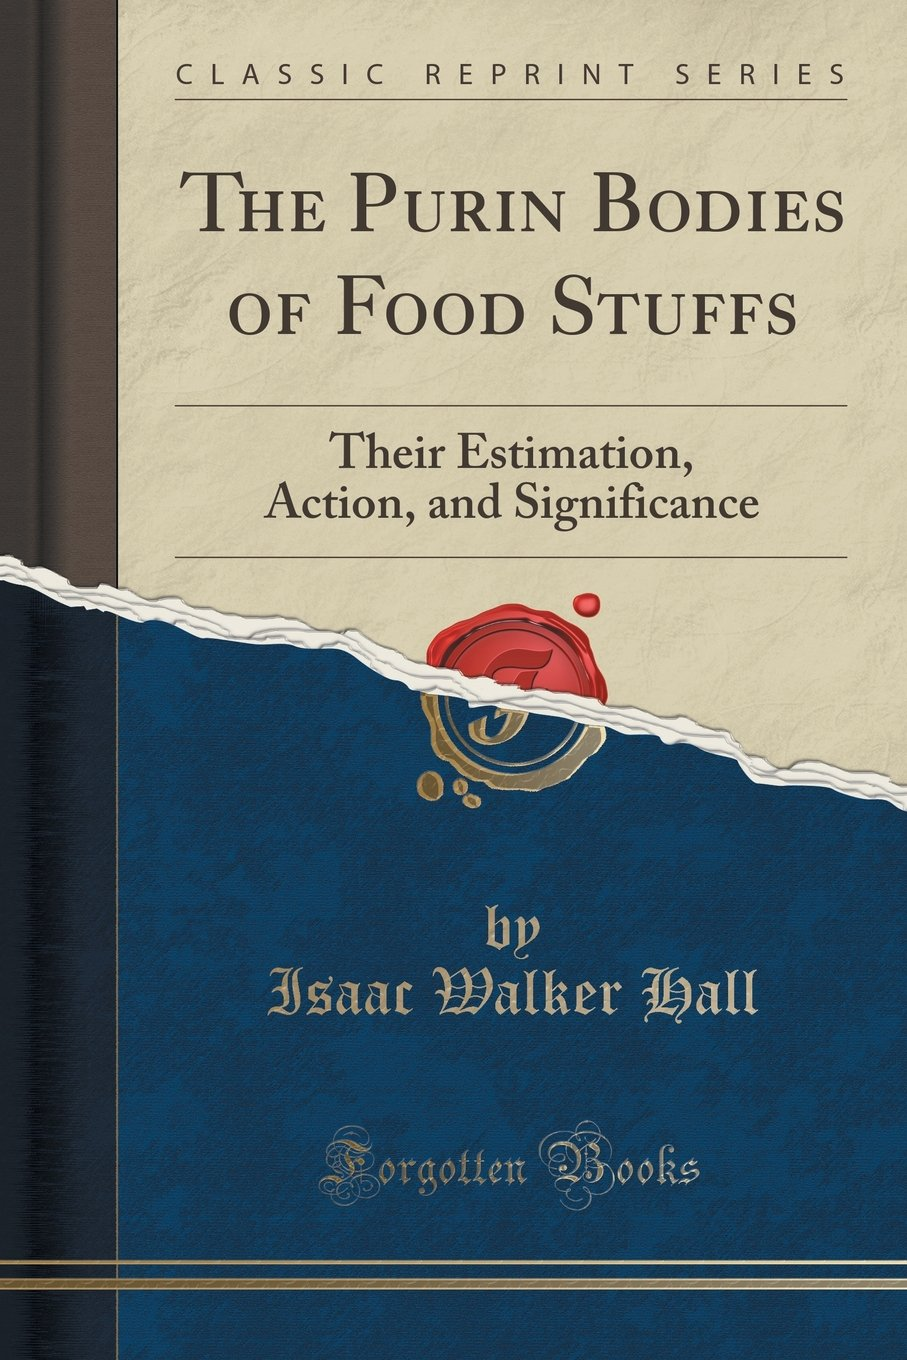 The Purin Bodies of Food Stuffs: Their Estimation, Action, and Significance (Classic Reprint)